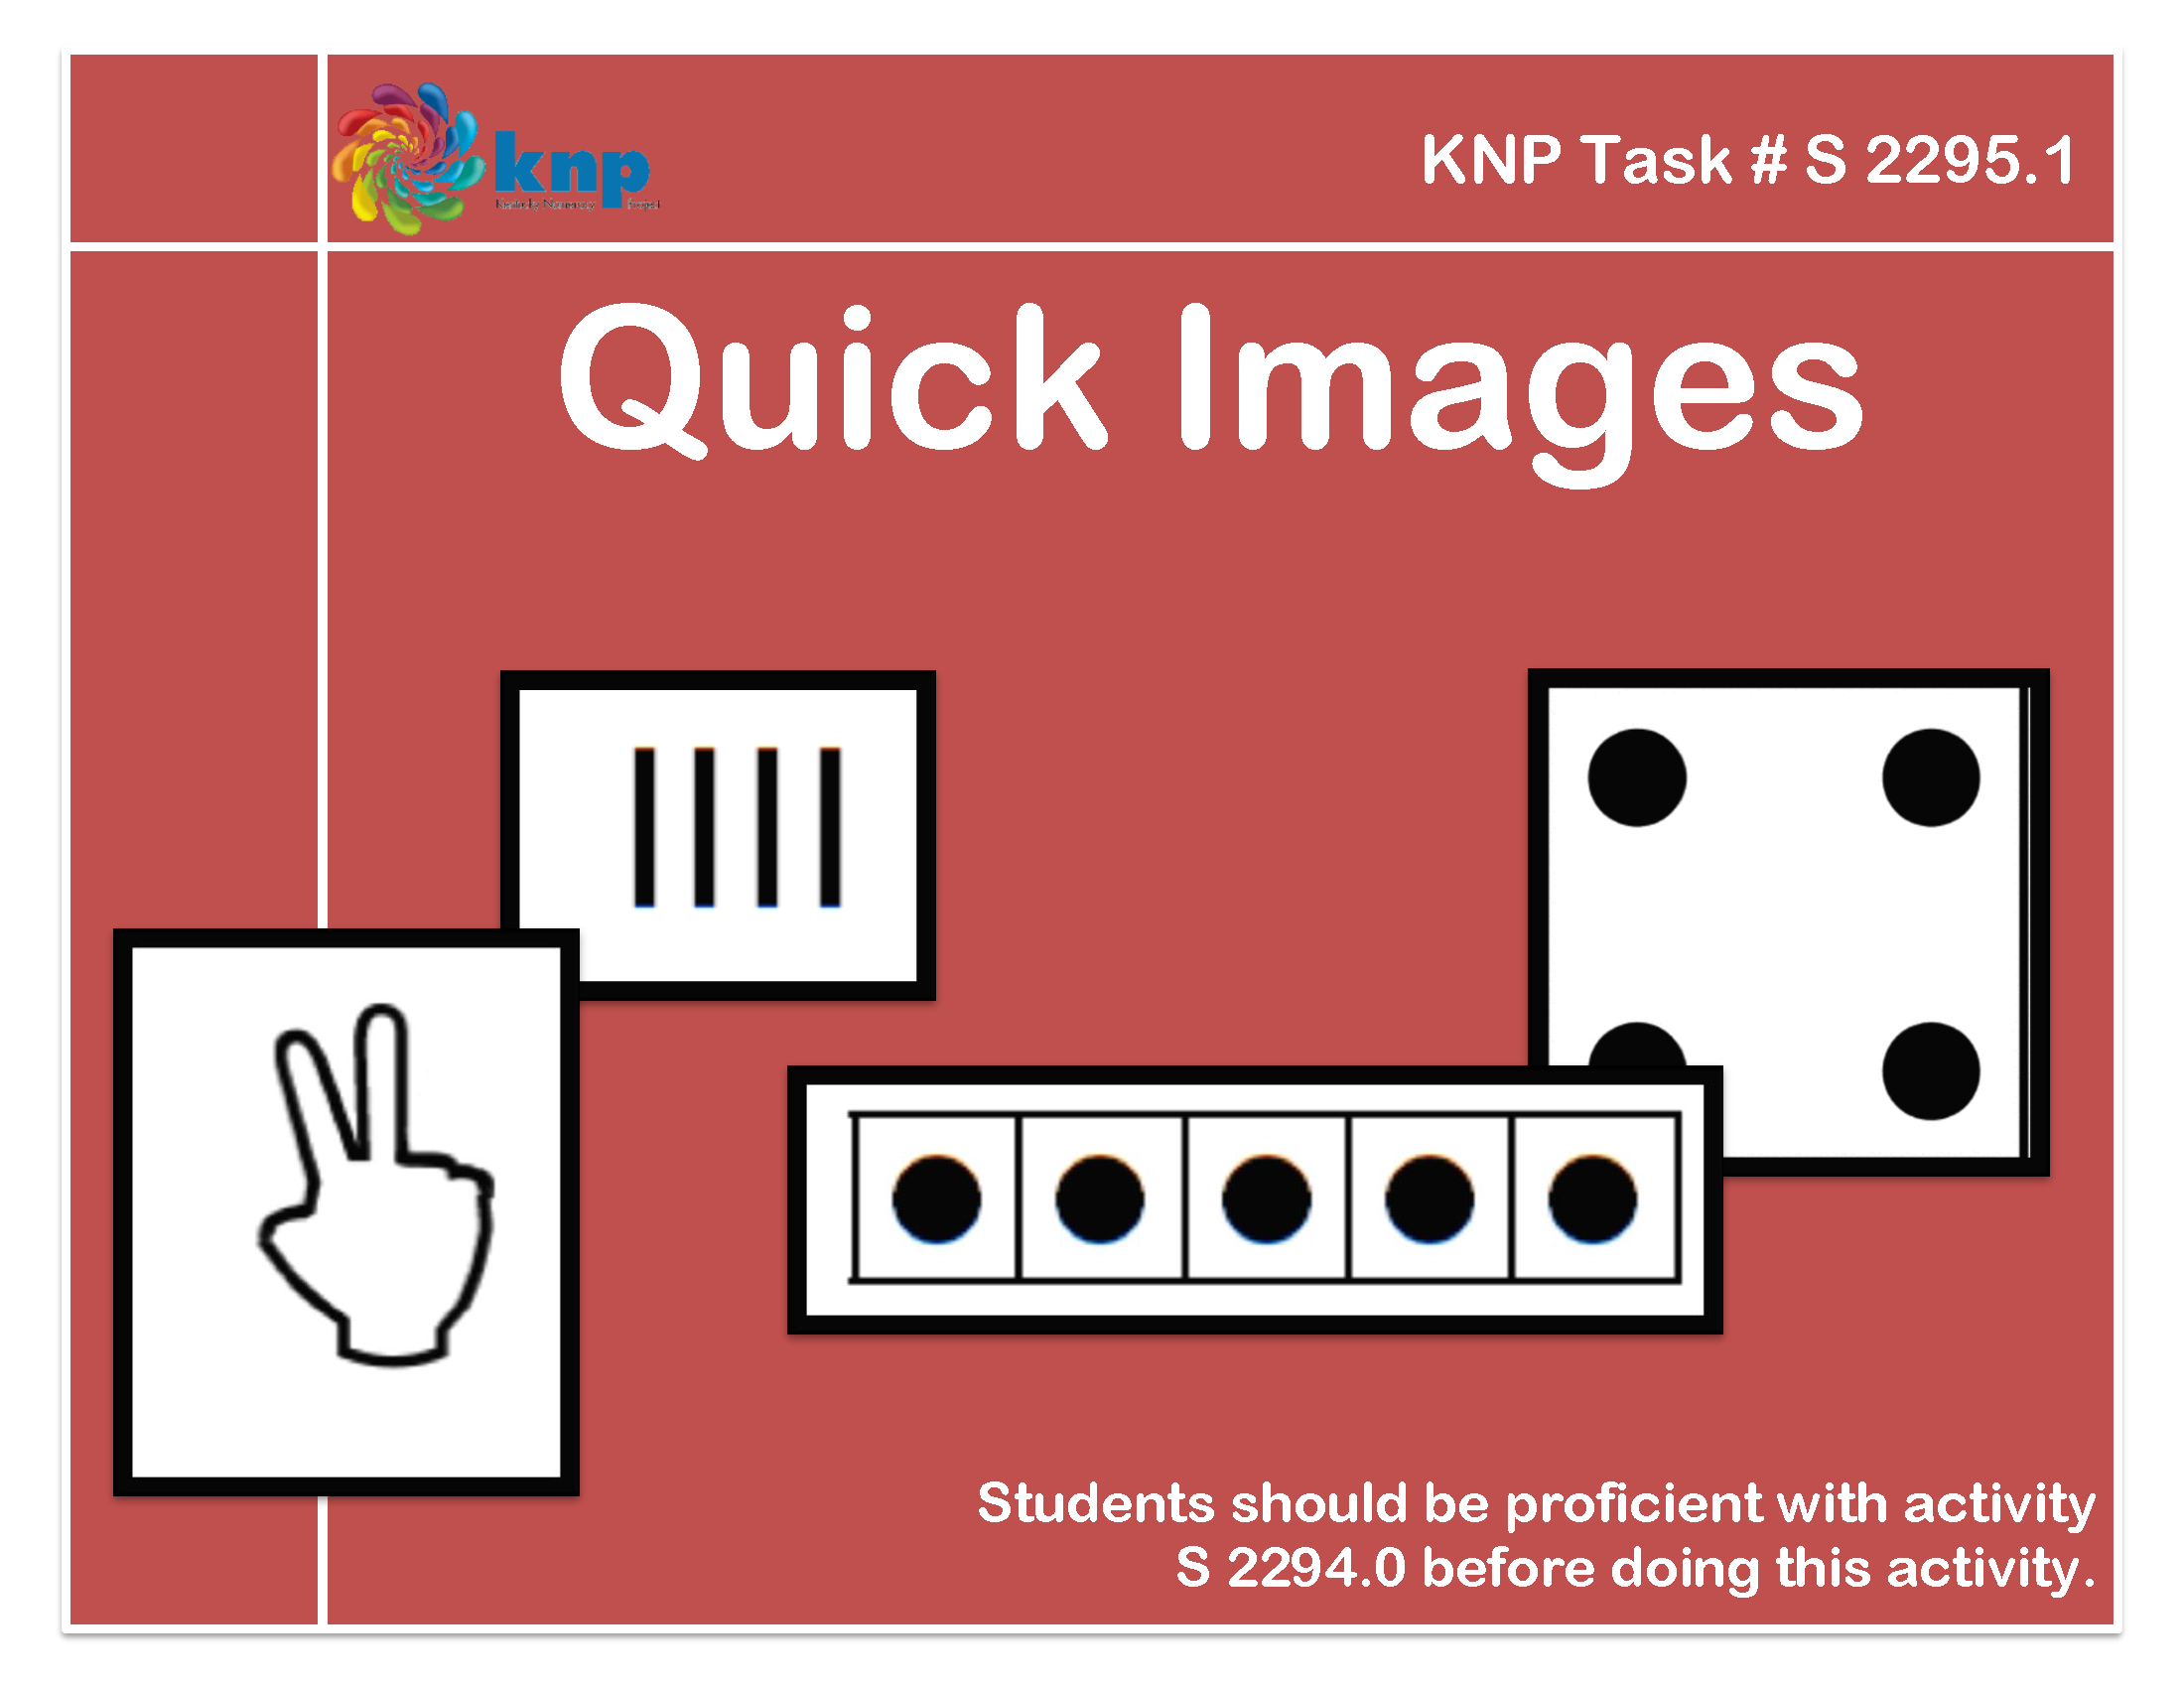 """""""Quick Images"""" - Tell quantities up to 5. Supports learning Common Core Standards: 0-K.OA.5, 0-K.OA.1 [KNP Task # S 2295.1]"""